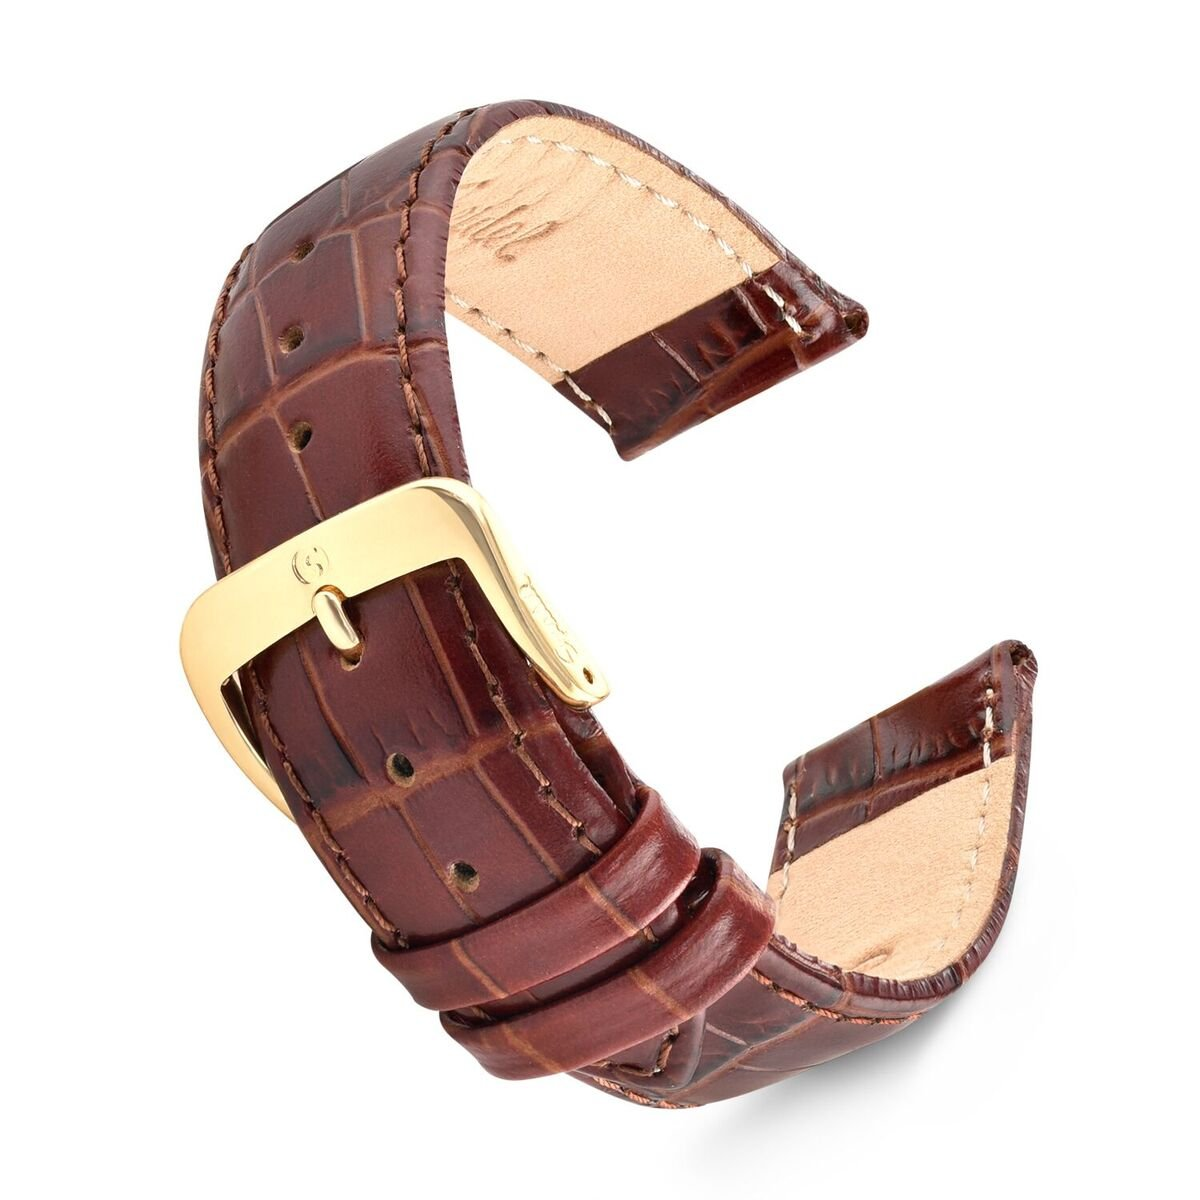 Speidel Genuine Leather Watch Band 20mm Brown Padded Alligator Grain Replacement Strap with Tone on Tone Stitching, Stainless Steel Metal Buckle Clasp, Watchband Fits Most Watch Brands